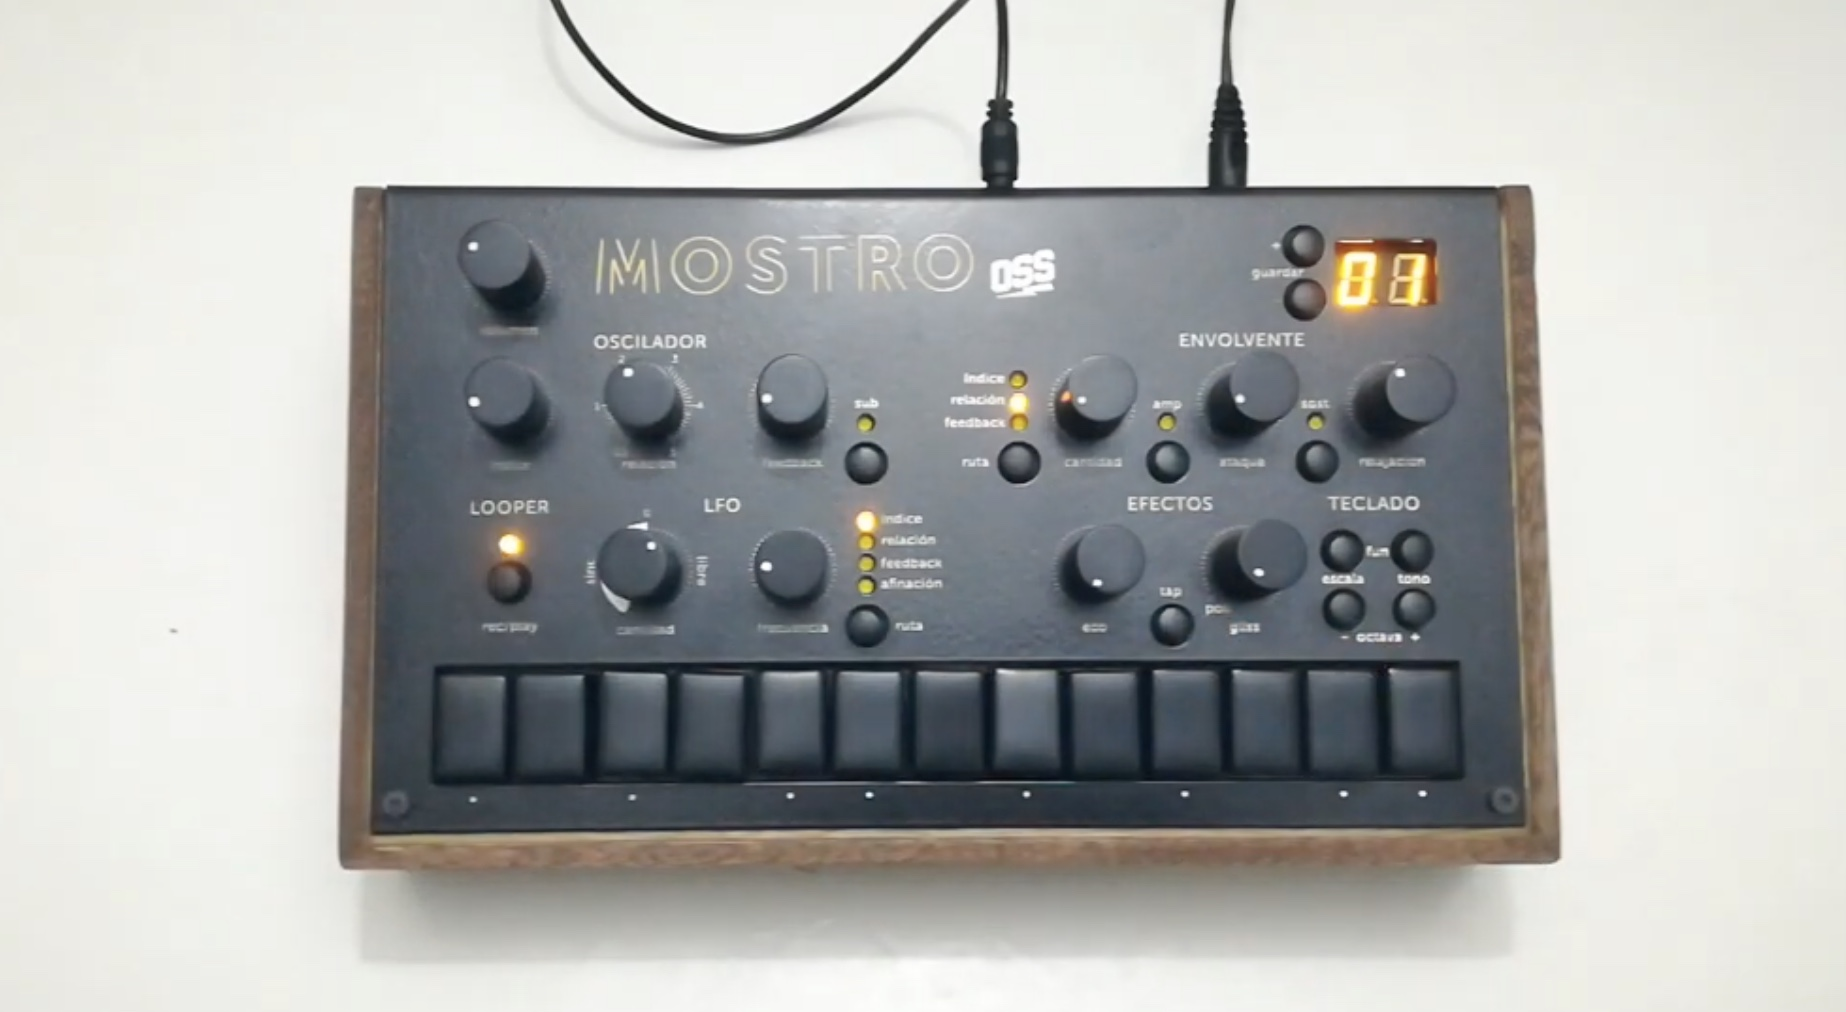 Mostro FM Synthesizer By Outer Space Sounds Is Ready For Pre